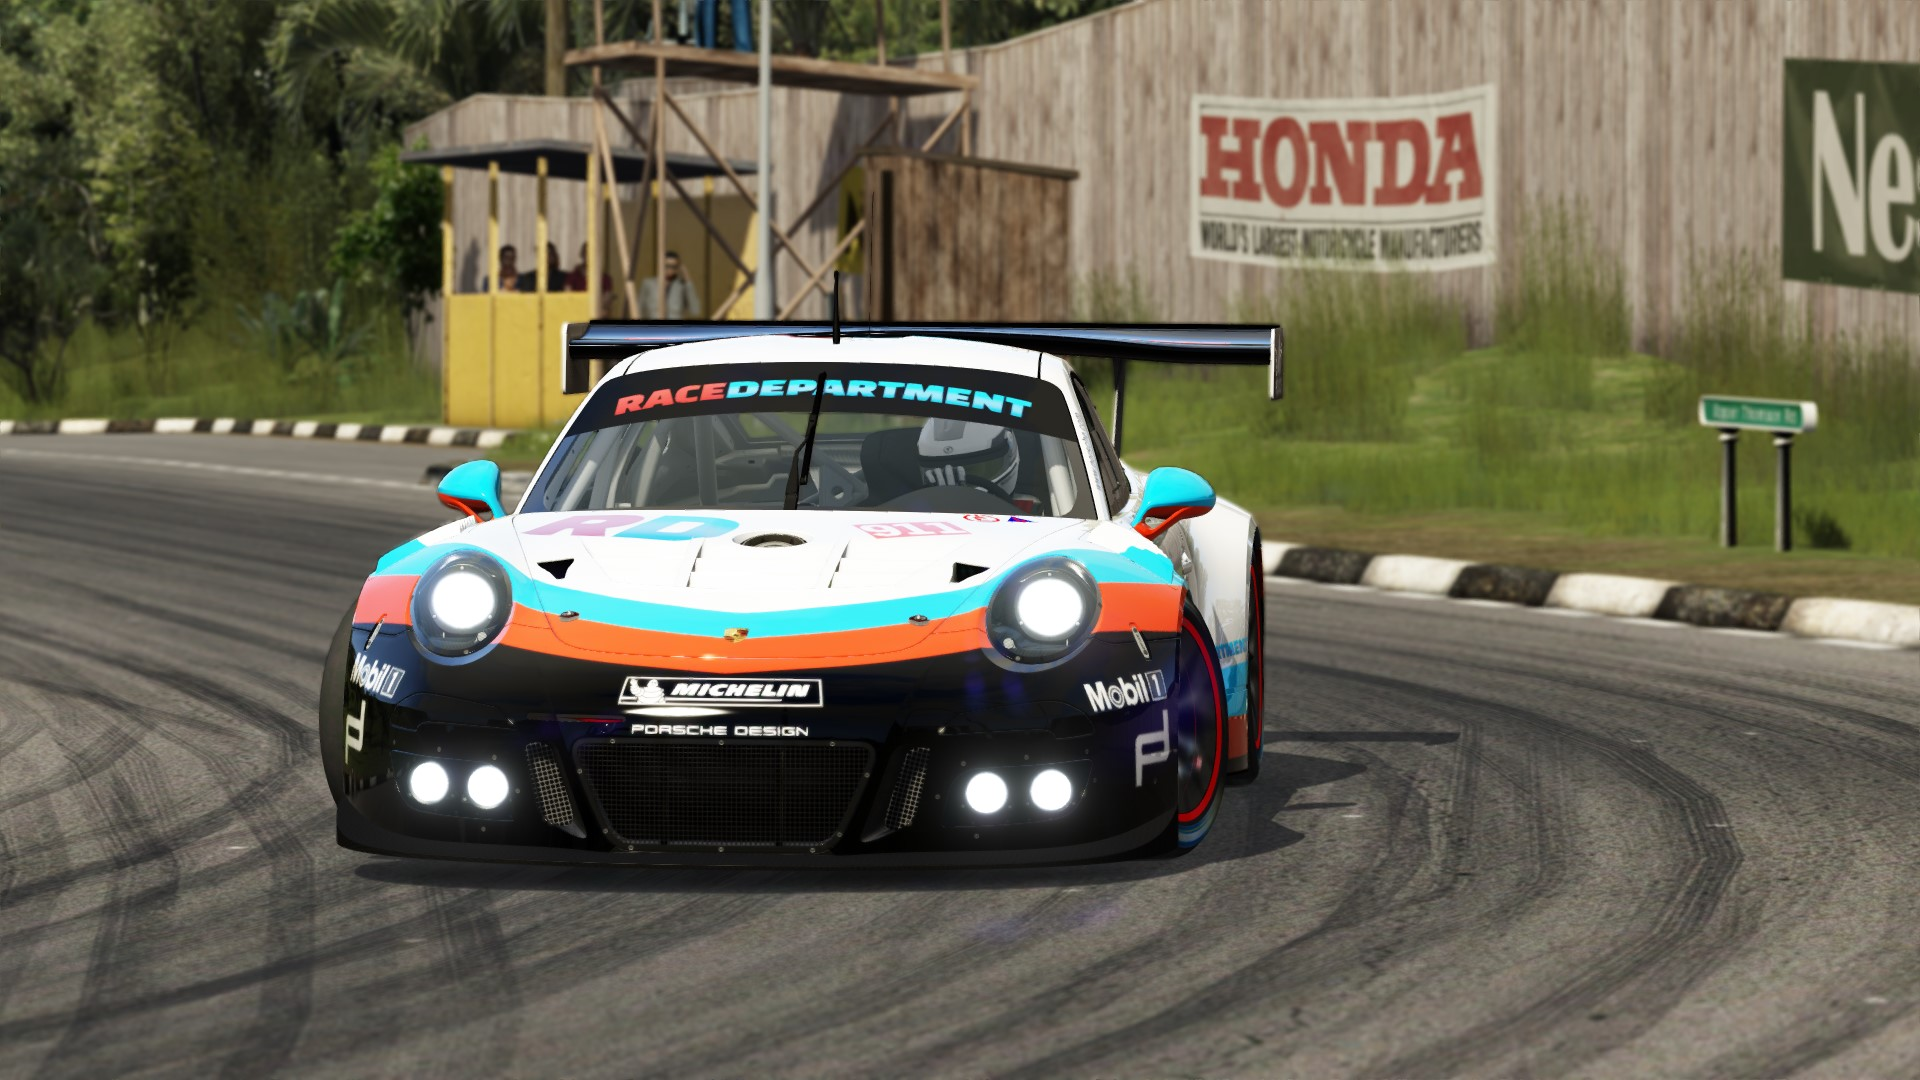 Screenshot_ks_porsche_911_gt3_r_2016_thomson_6-2-117-12-8-30.jpg